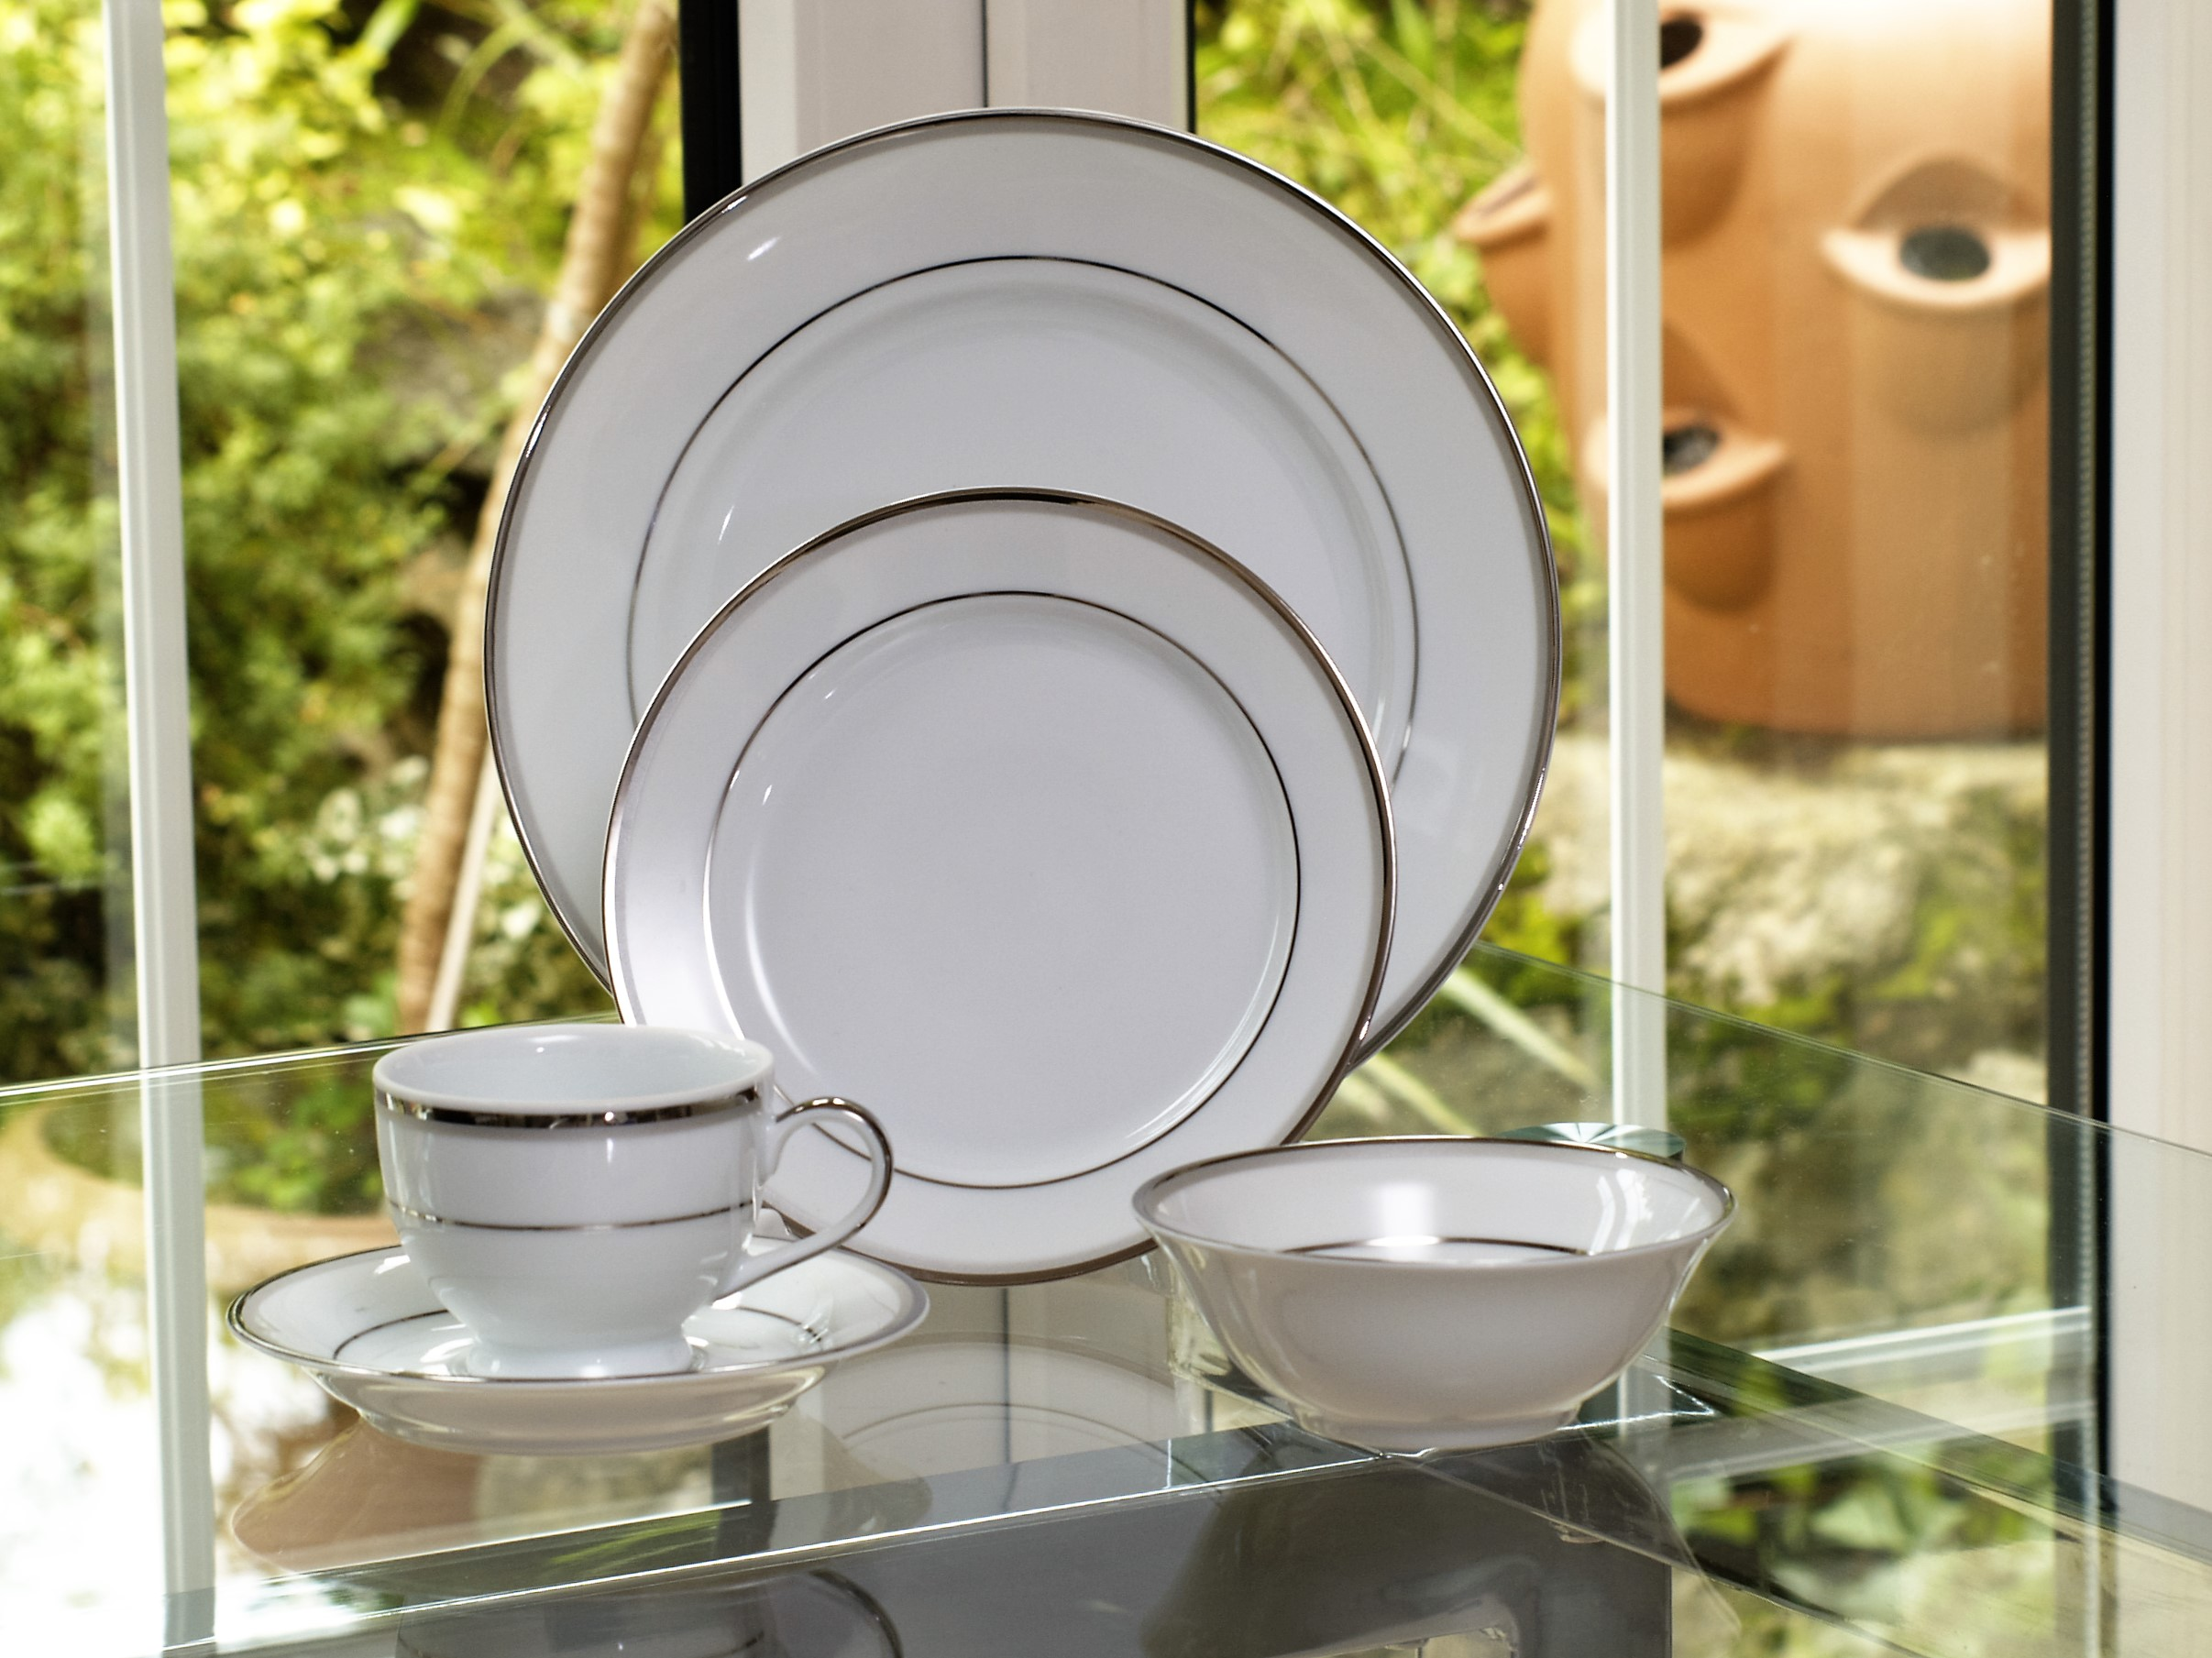 INNOVA PLATINUM 28 PIECE DINNER SERVICE